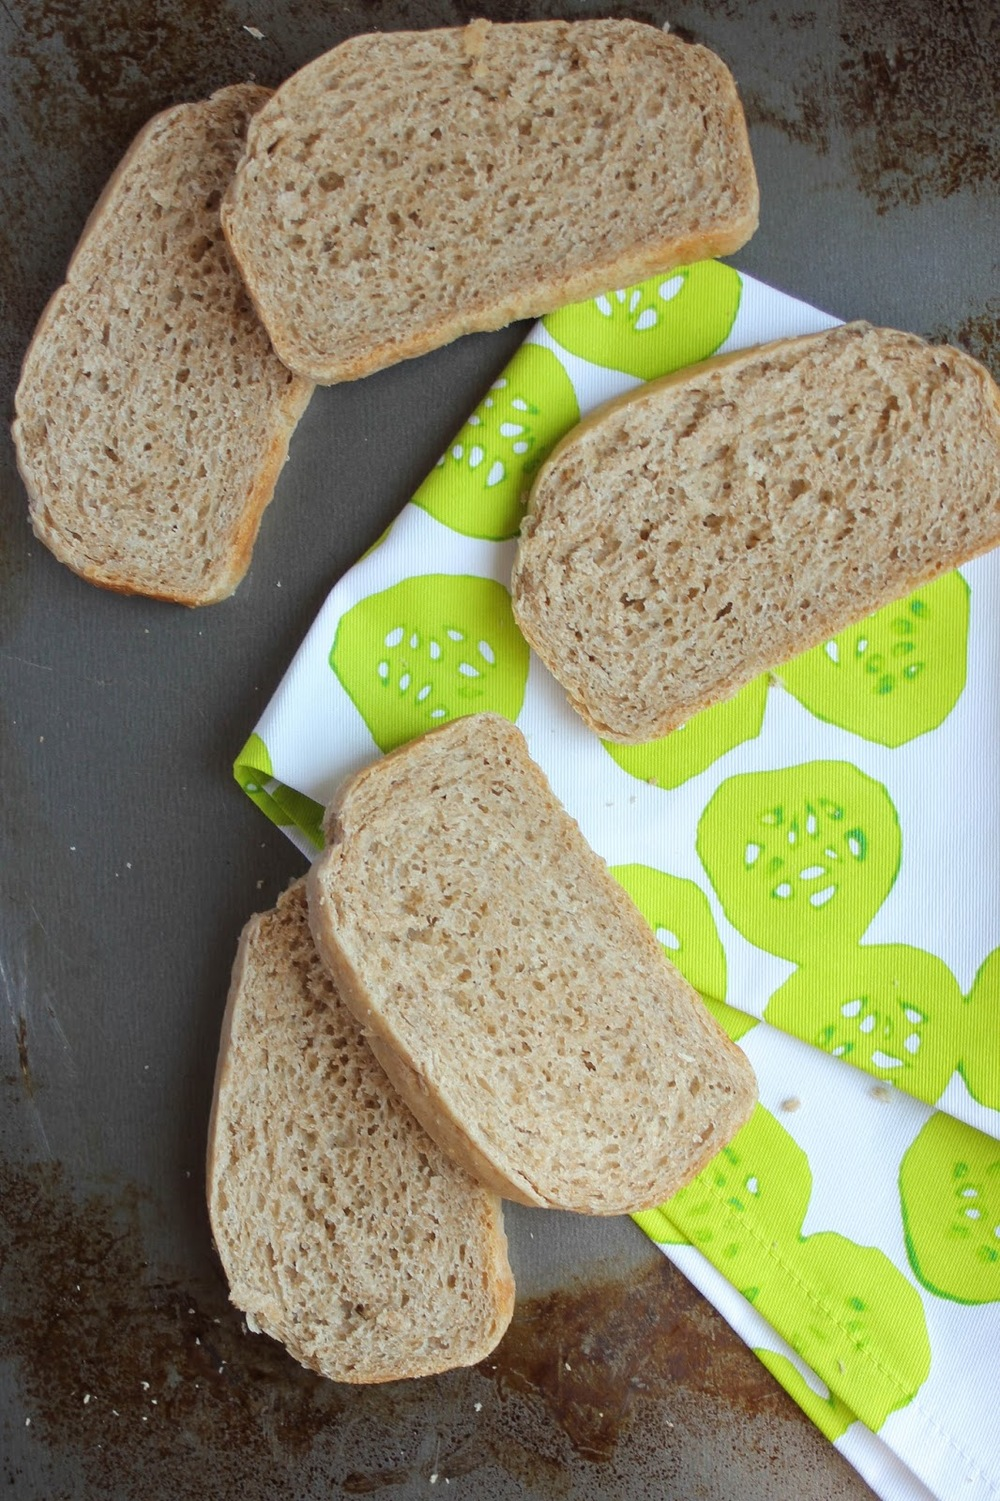 Delicious recipe for white whole wheat sandwich bread! And it's vegan! http://www.littlecityadventures.com/2015/09/recipe-vegan-white-whole-wheat-sandwich.html